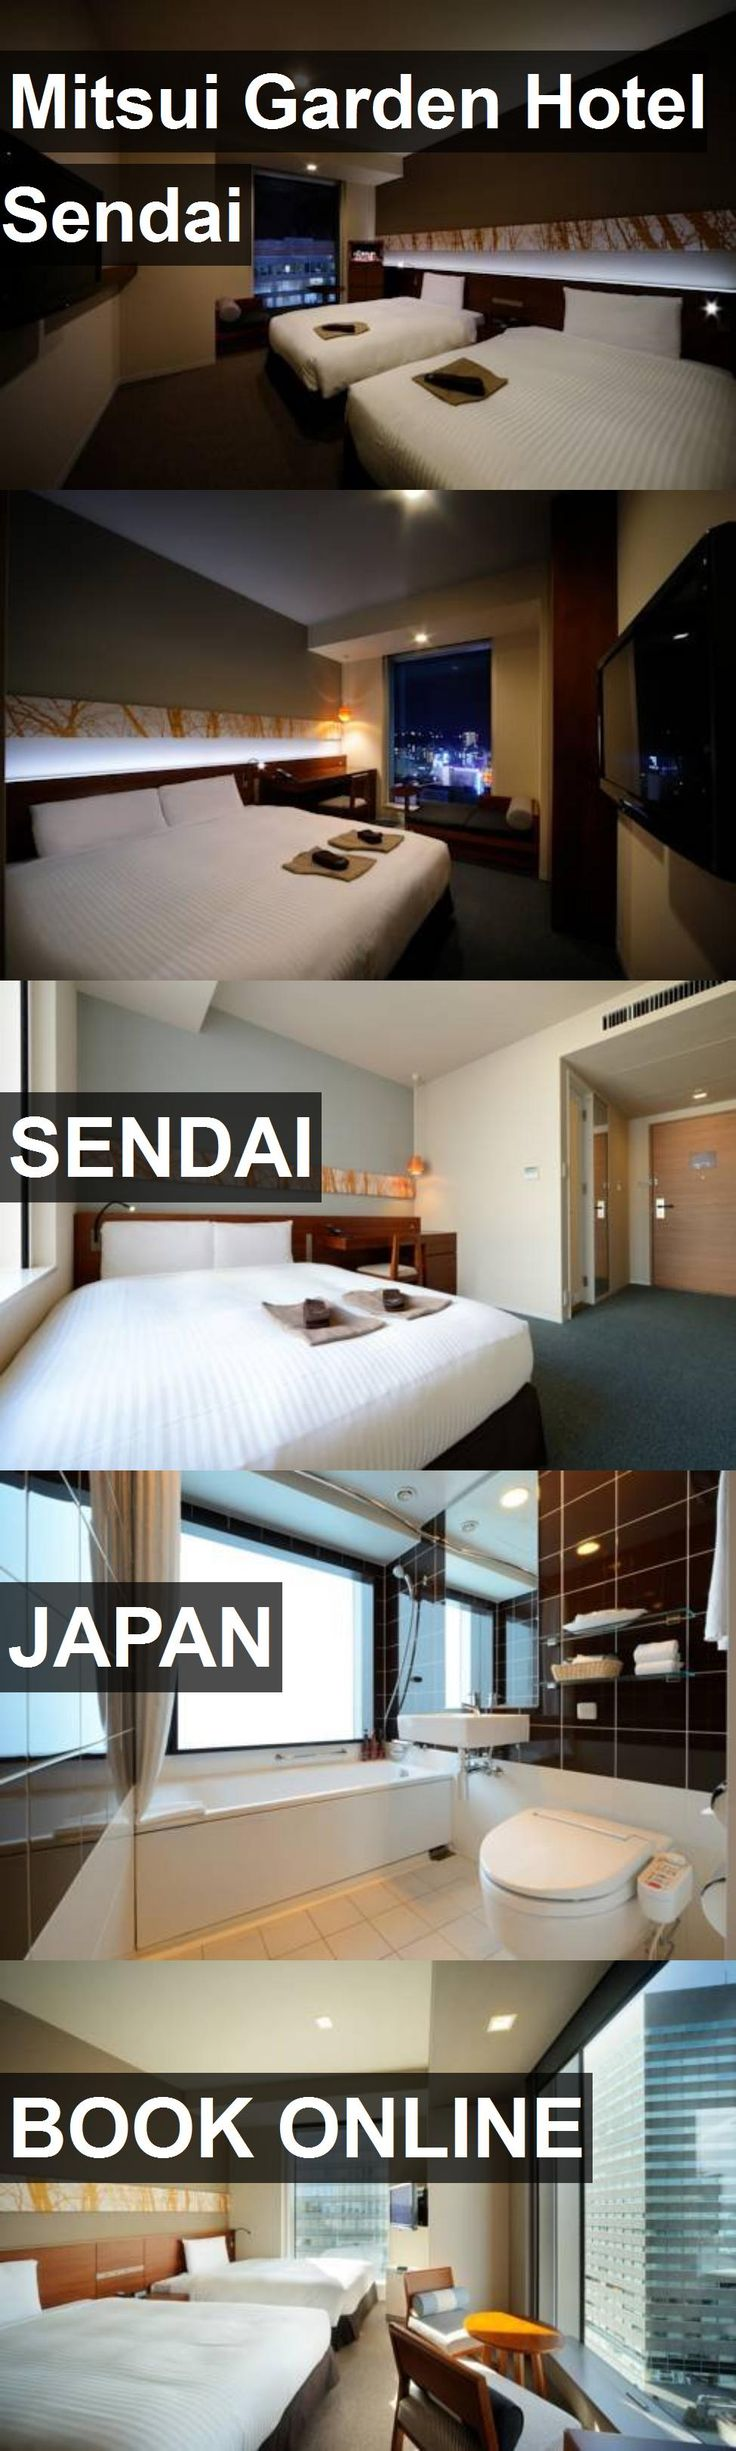 Mitsui Garden Hotel Sendai in Sendai, Japan. For more information, photos, reviews and best prices please follow the link. #Japan #Sendai #travel #vacation #hotel